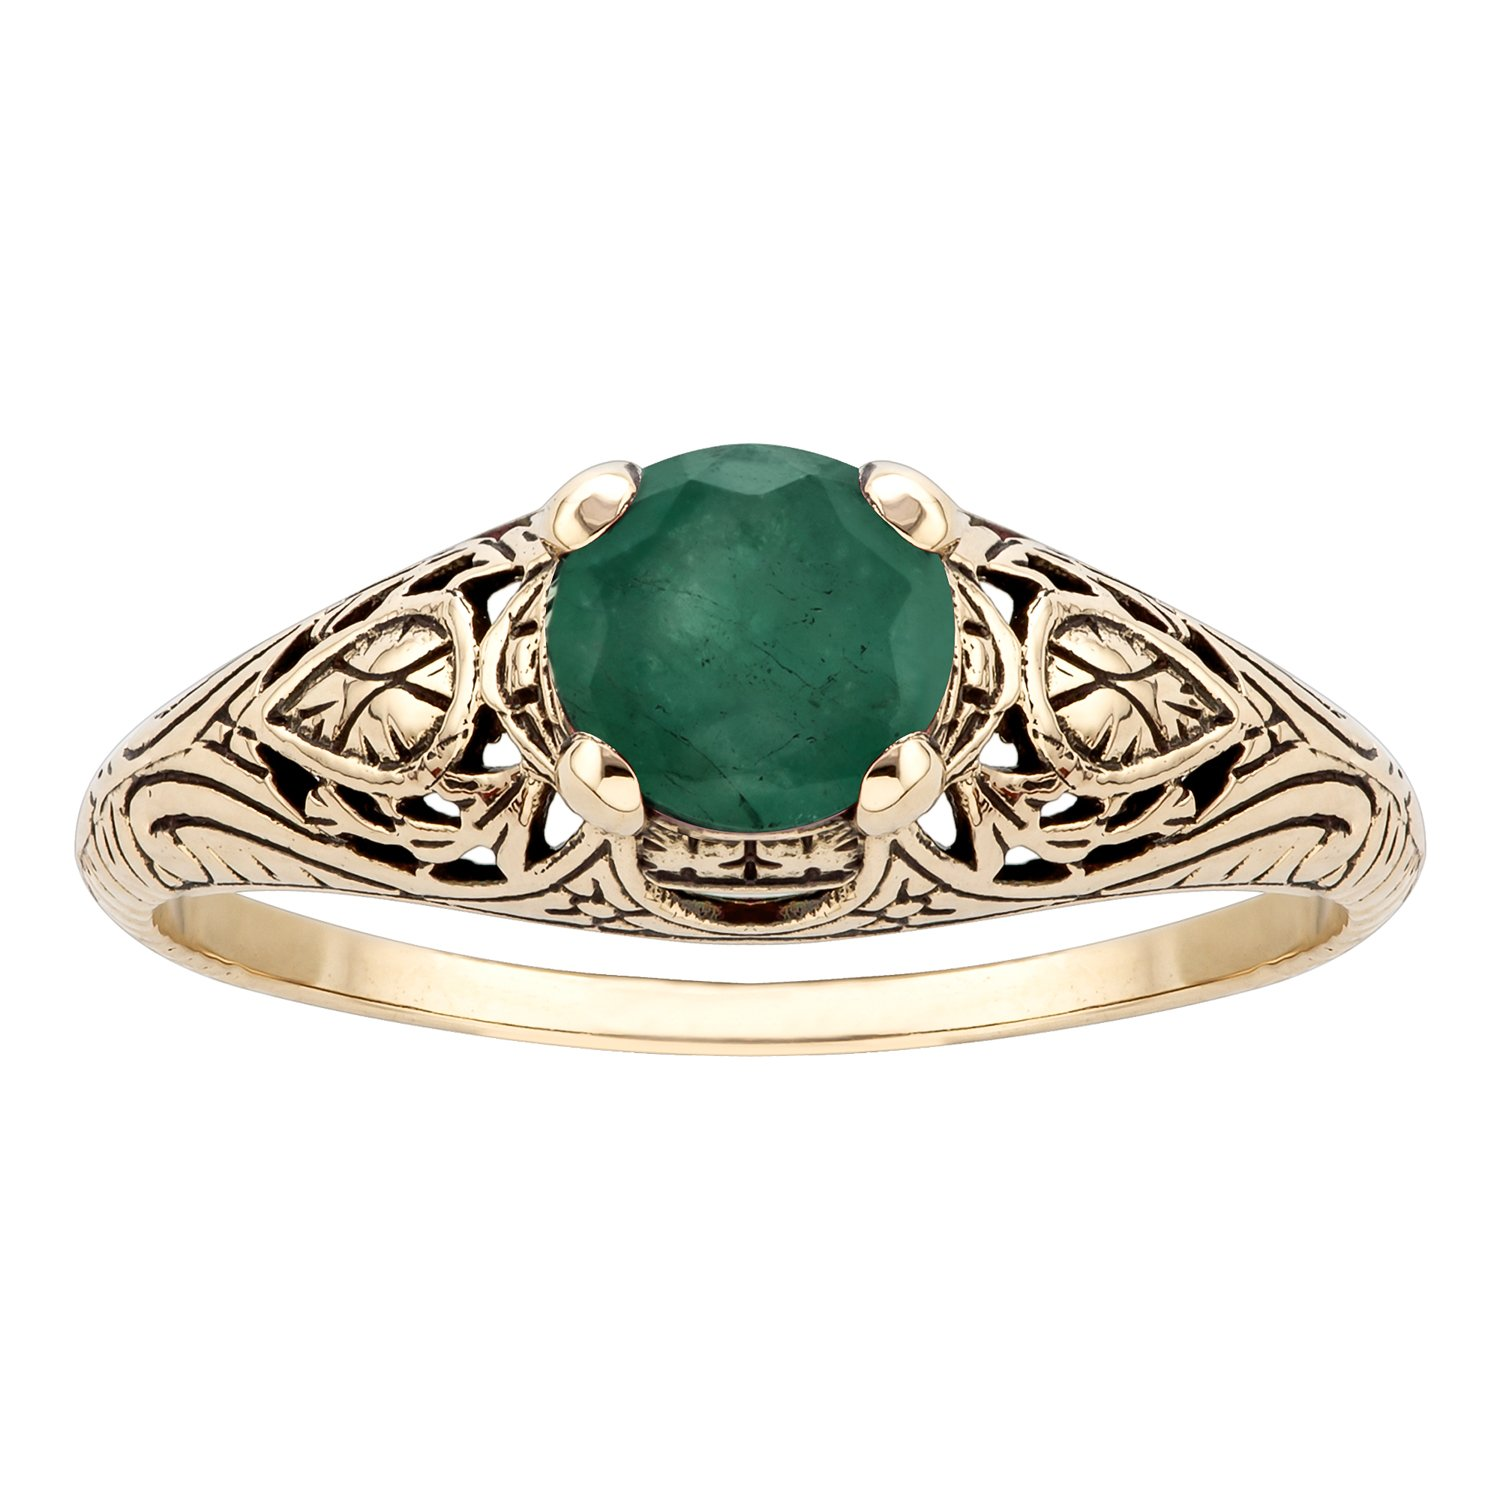 10k Yellow Gold Vintage Style Genuine Round Emerald Scroll Ring by Instagems